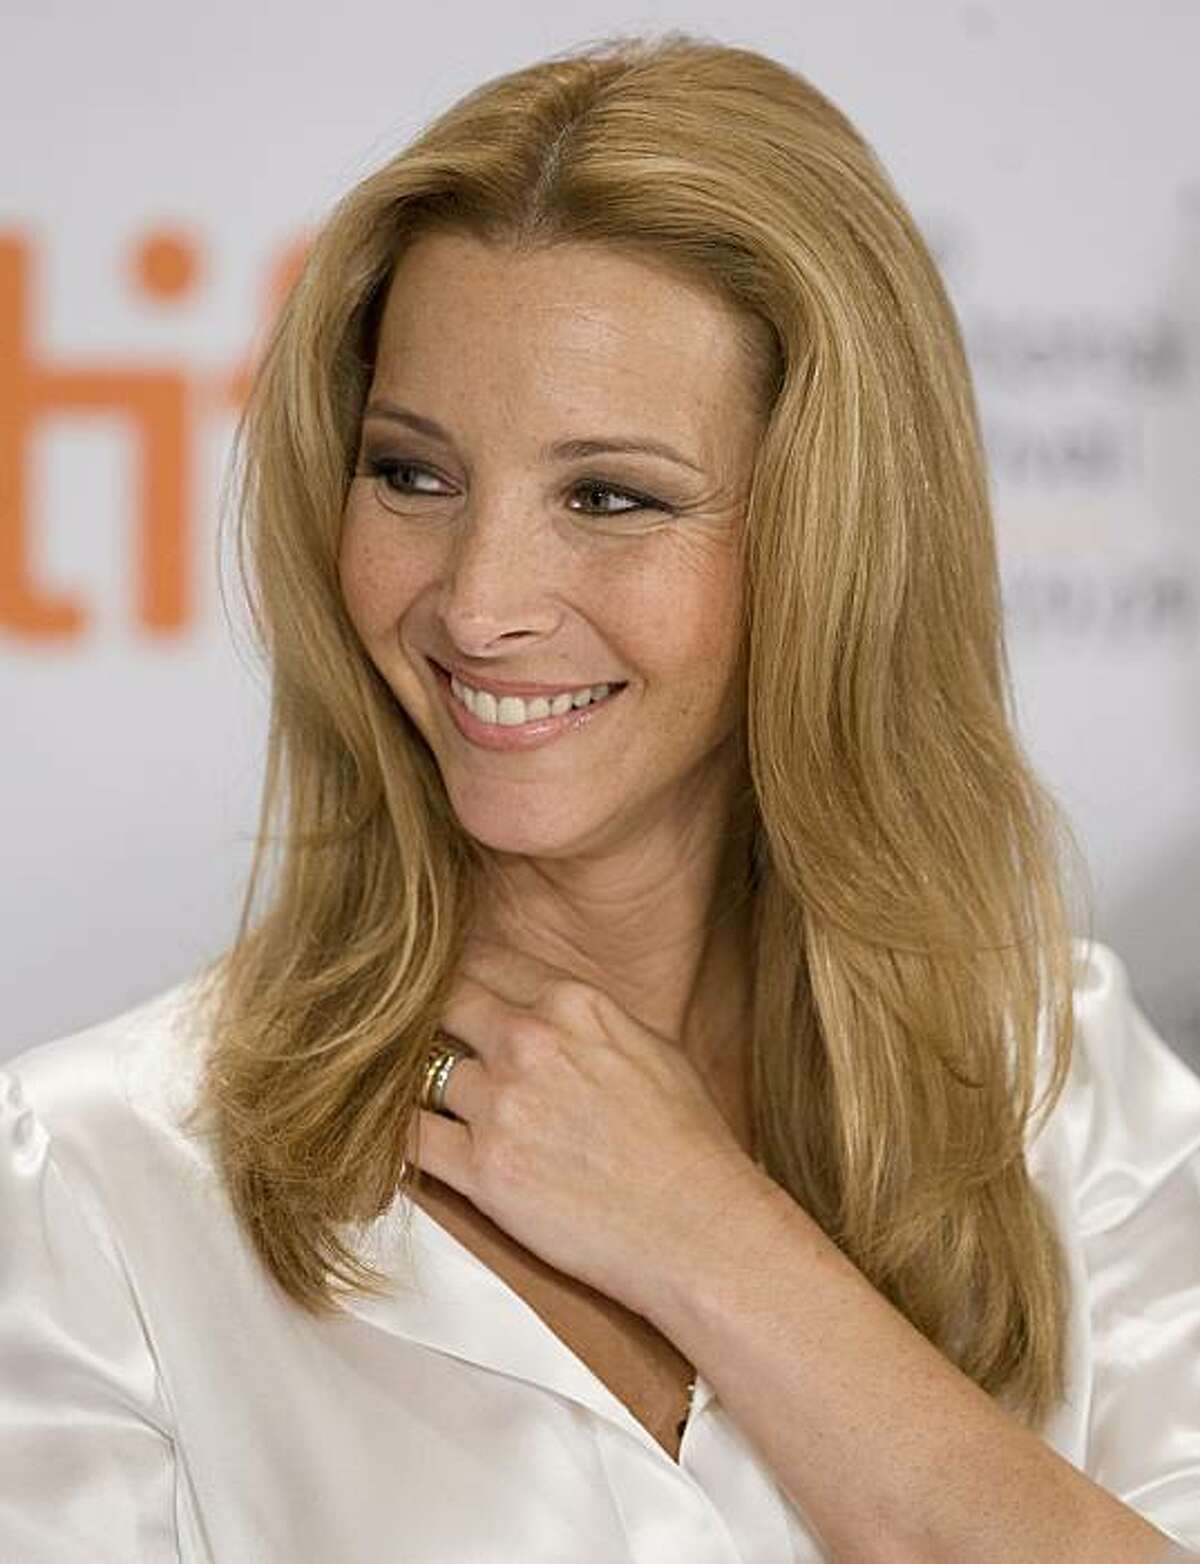 """Actress Lisa Kudrow takes part in a news conference for the film """"Love and Other Impossible Pursuits"""" during the Toronto International Film Festival in Toronto, Ontario, Wednesday, September 16, 2009."""